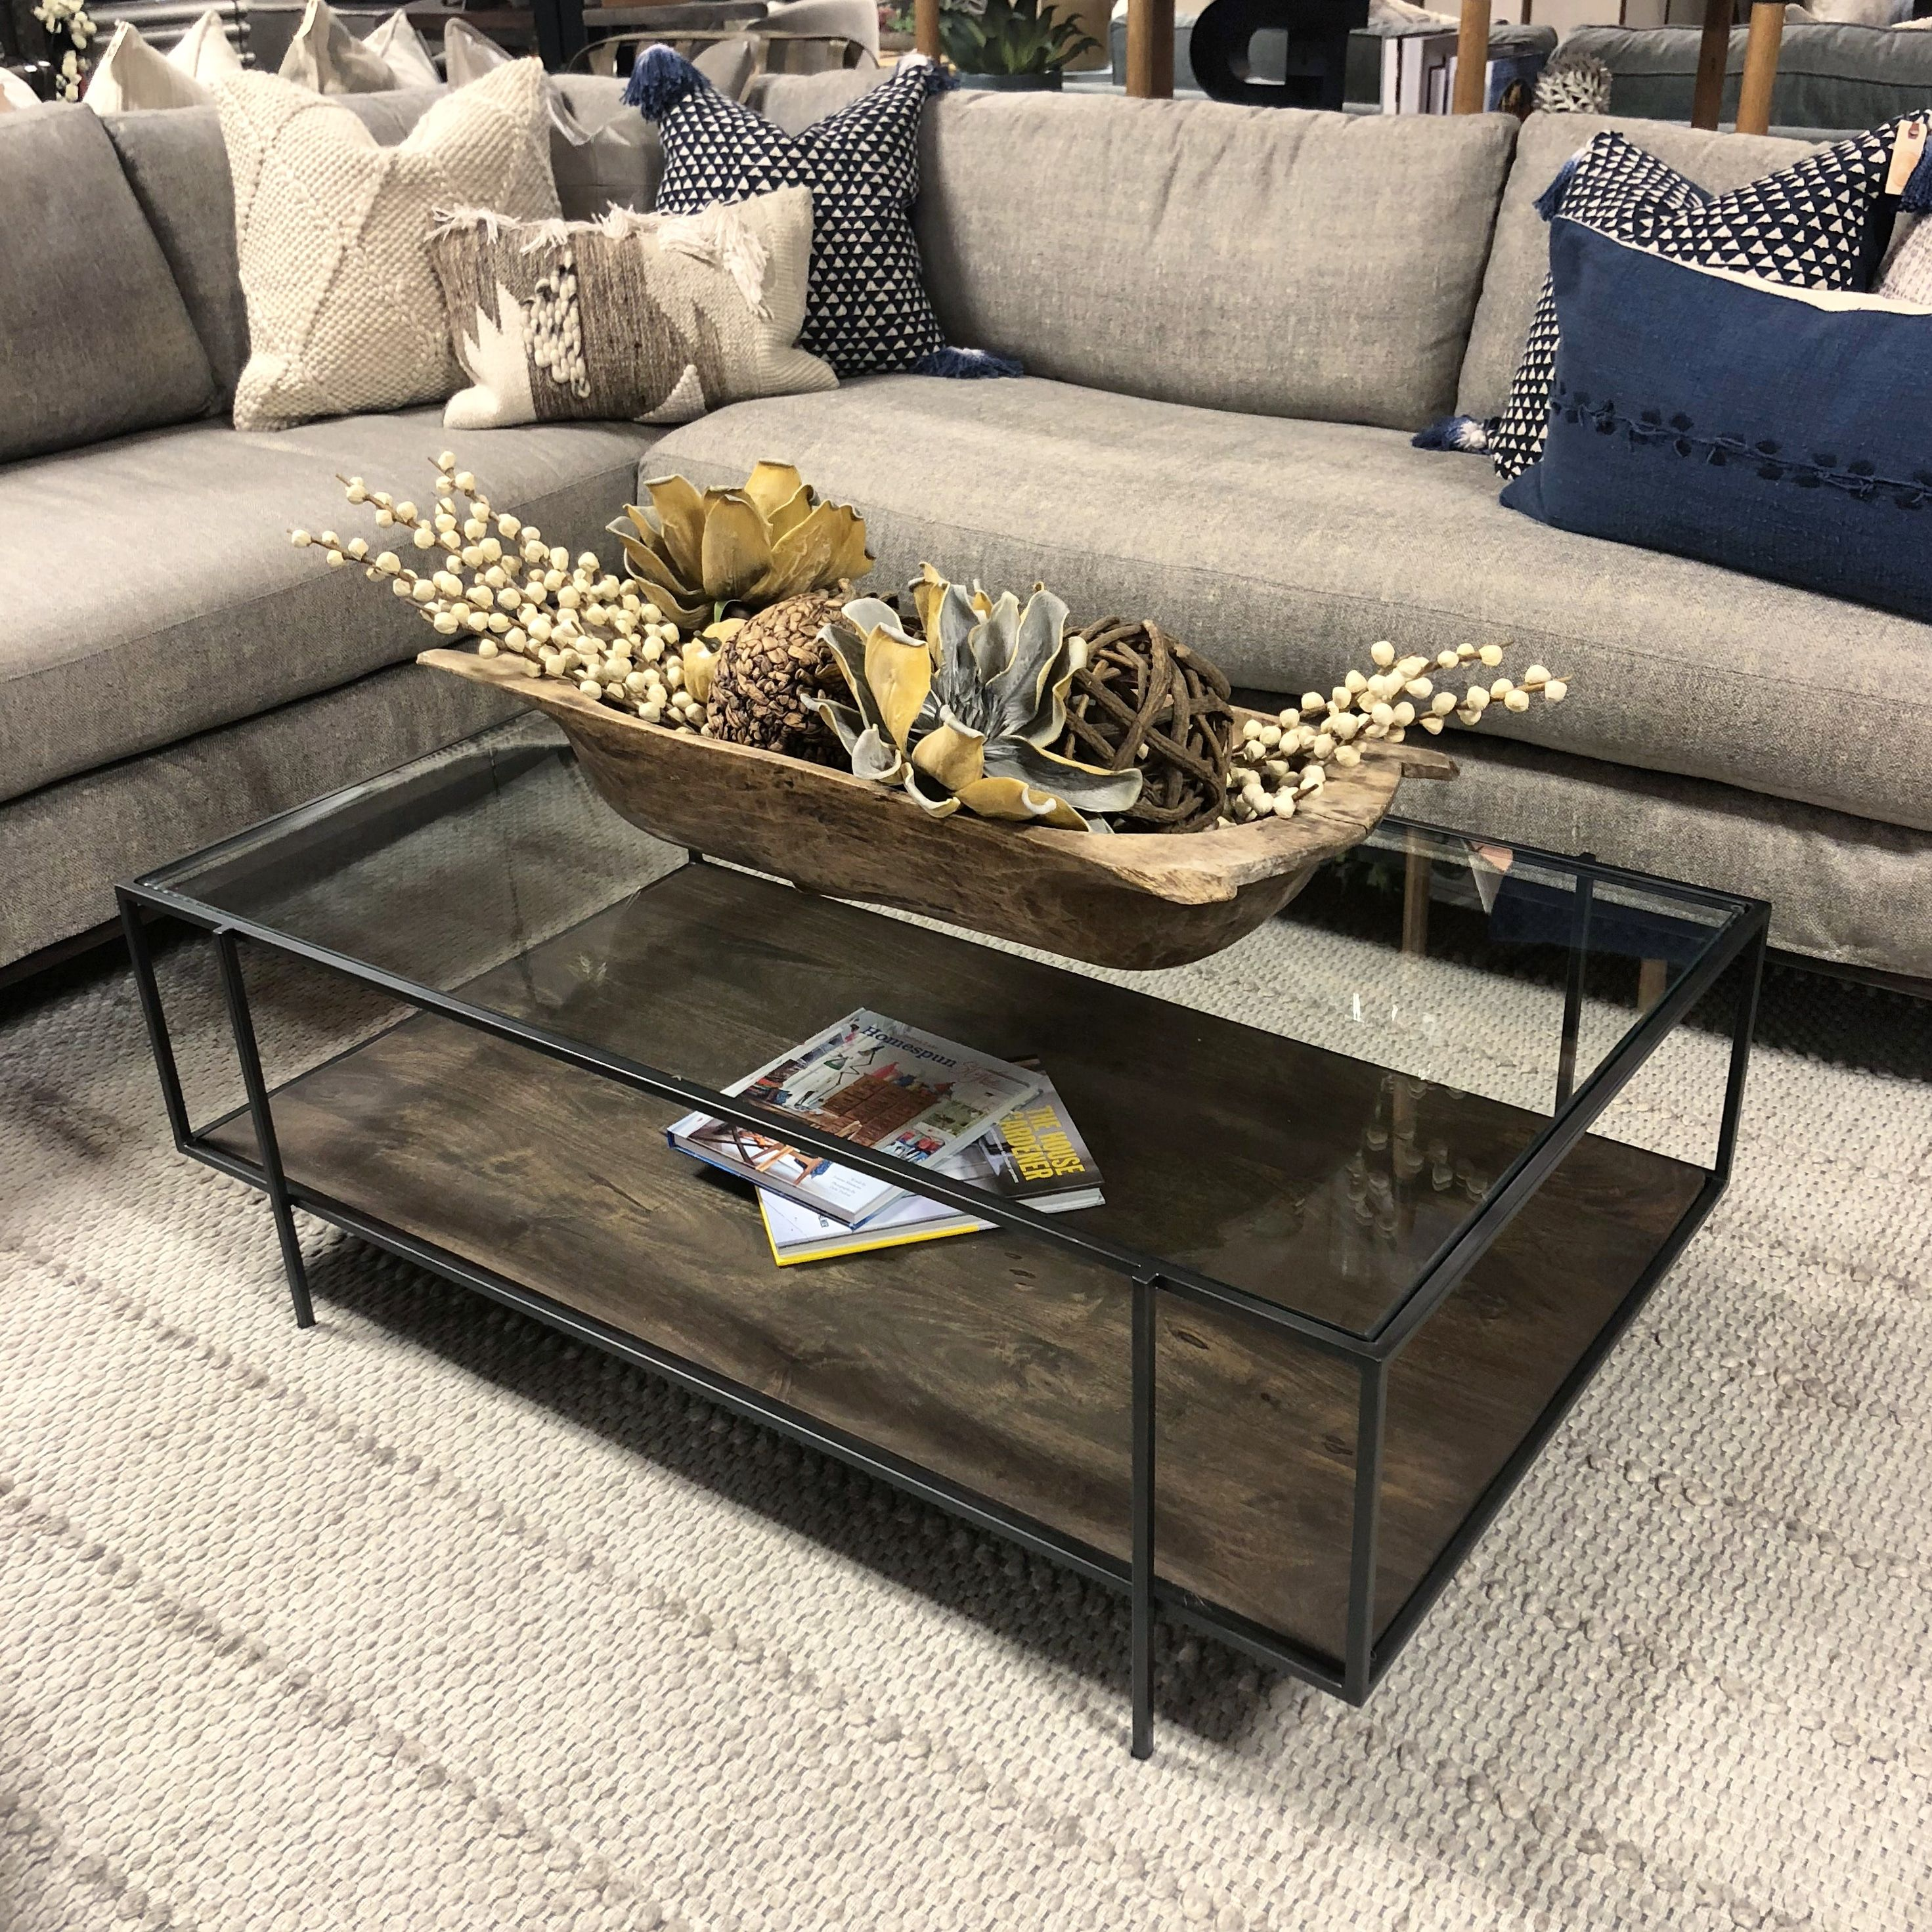 Marvelous The Ivano Coffee Table Opens Up This Living Room Setting Download Free Architecture Designs Scobabritishbridgeorg